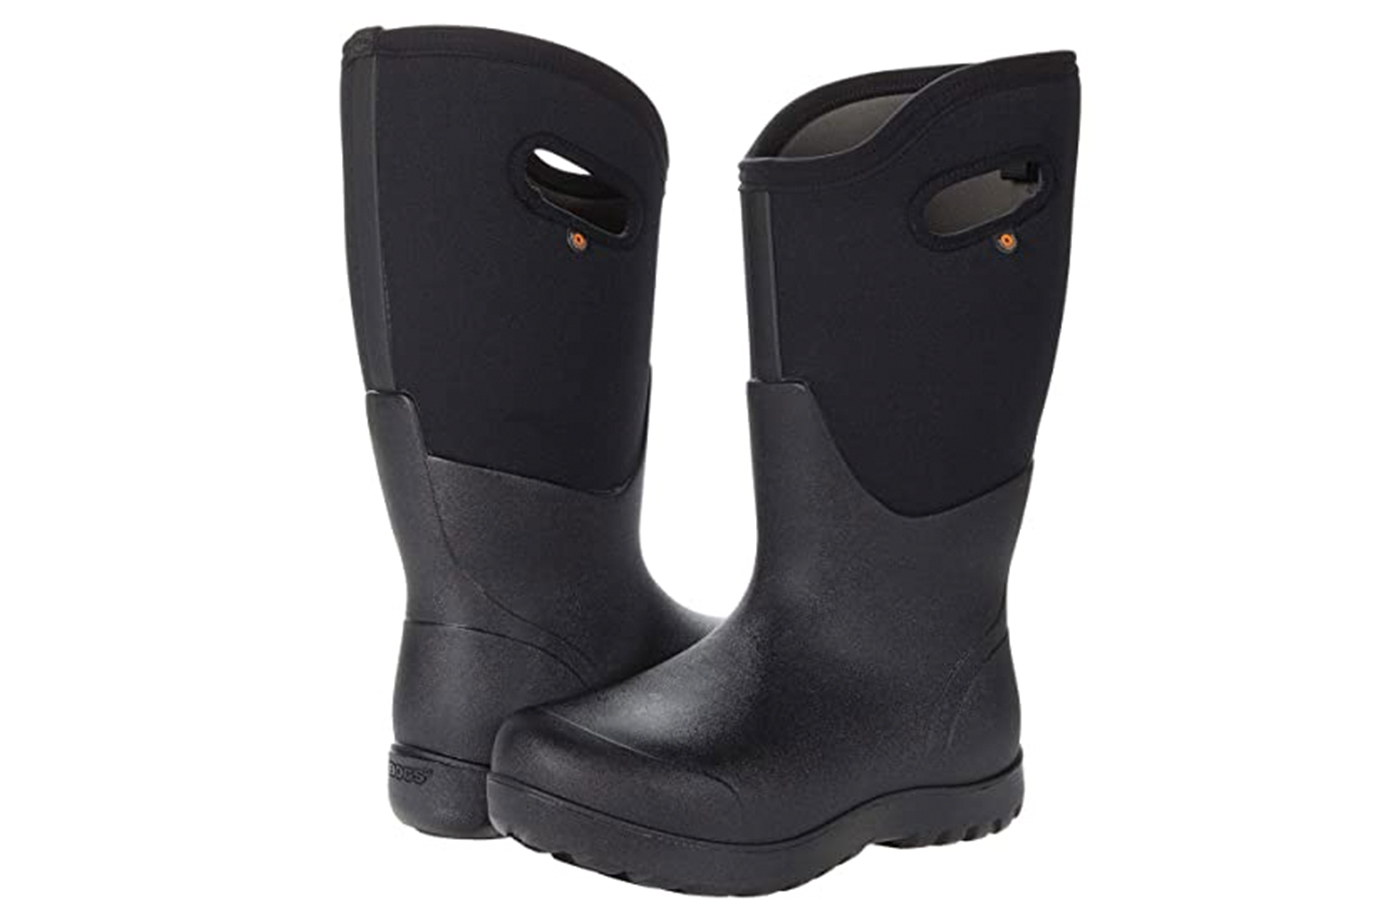 The Best Rain Boots for Women